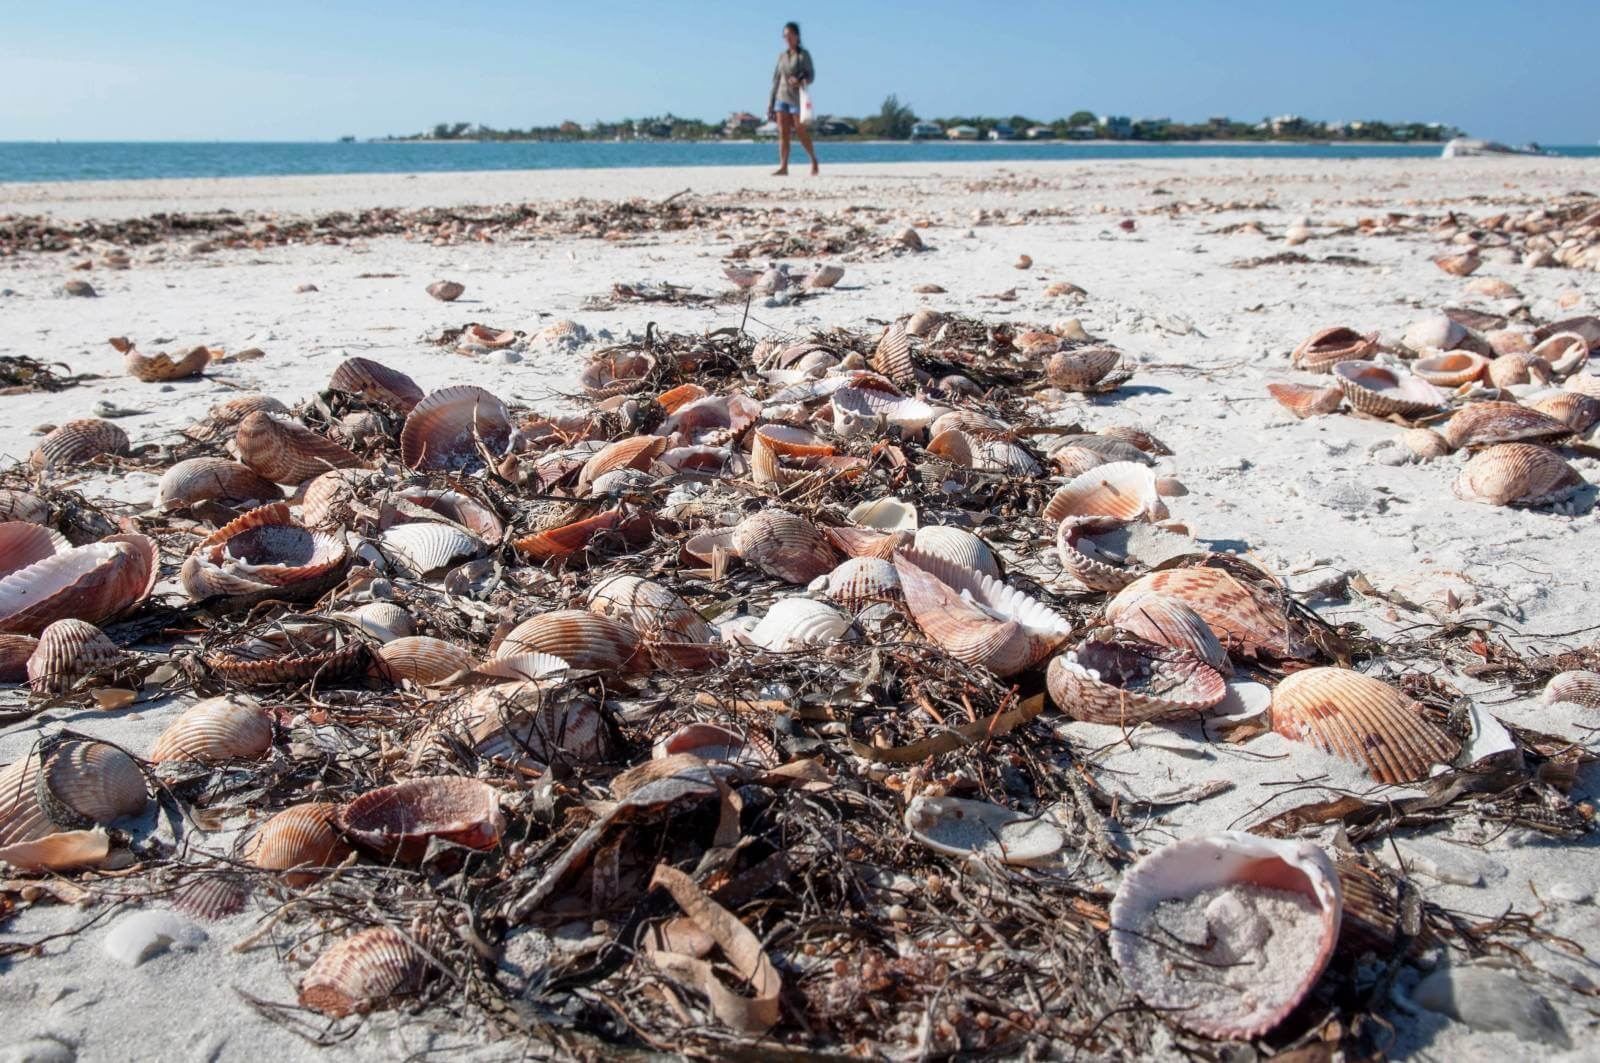 Take a cruise to go shelling on Cayo Costa, State Park near Fort Myers, Florida on a girls weekend getaway trip. Photo by Debi Pittman Wilkey. Must Do Visitor Guides, MustDo.com